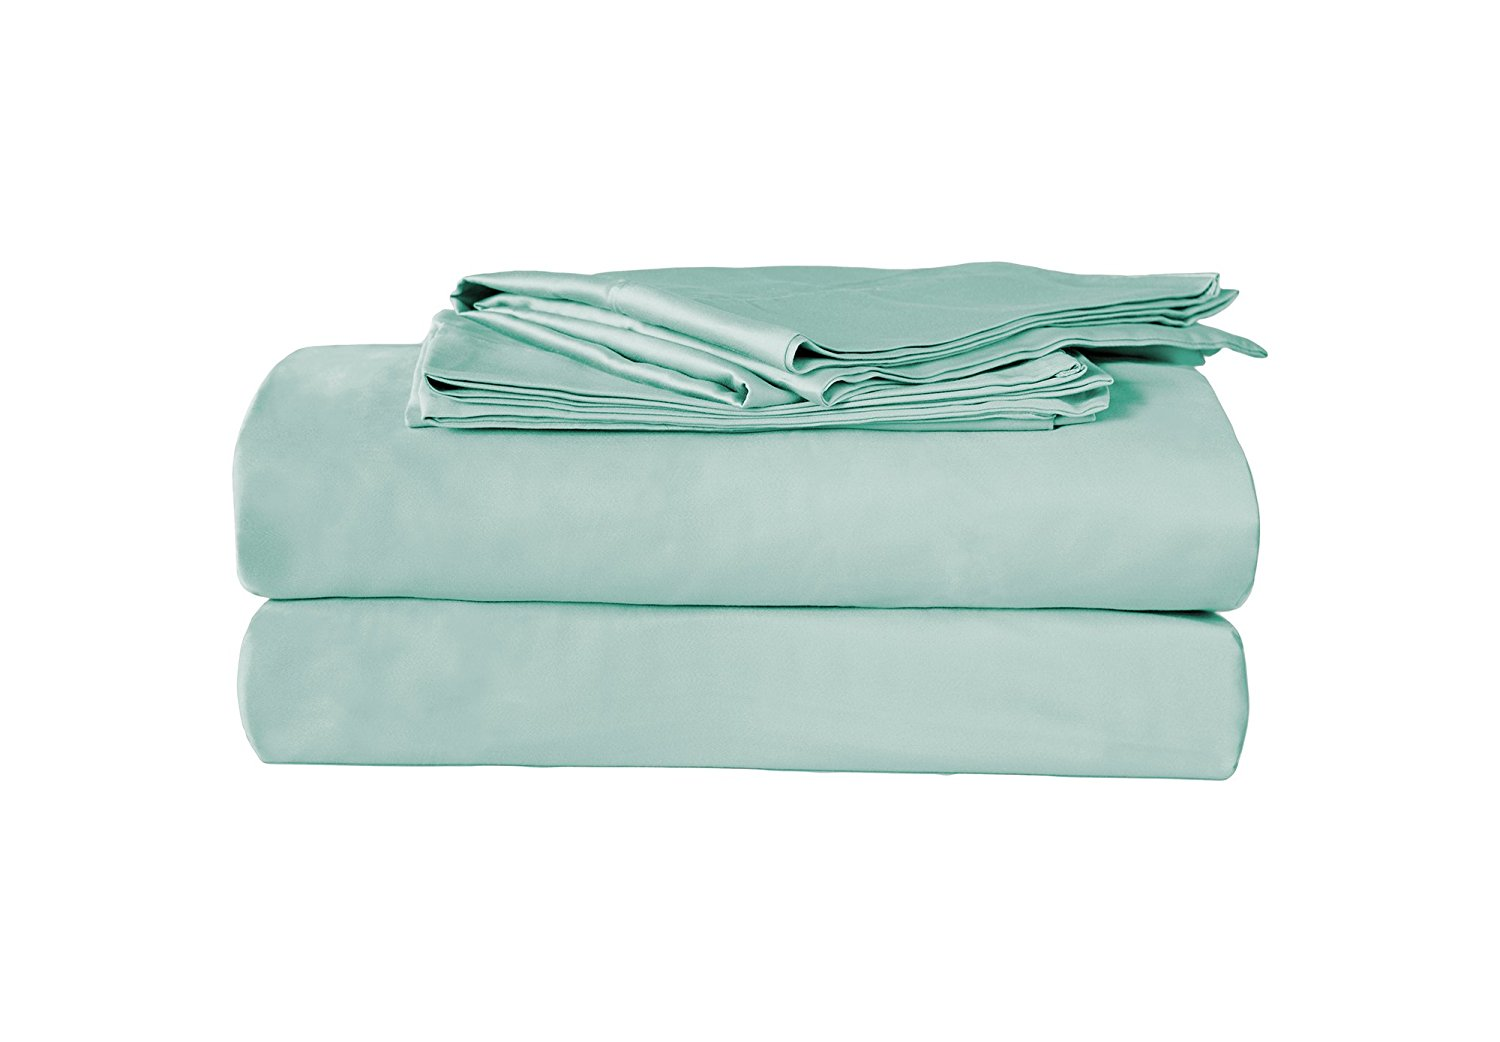 Alok International 300-110038 300 Thread Count Organic Cotton Sheet Set, King, Light Blue